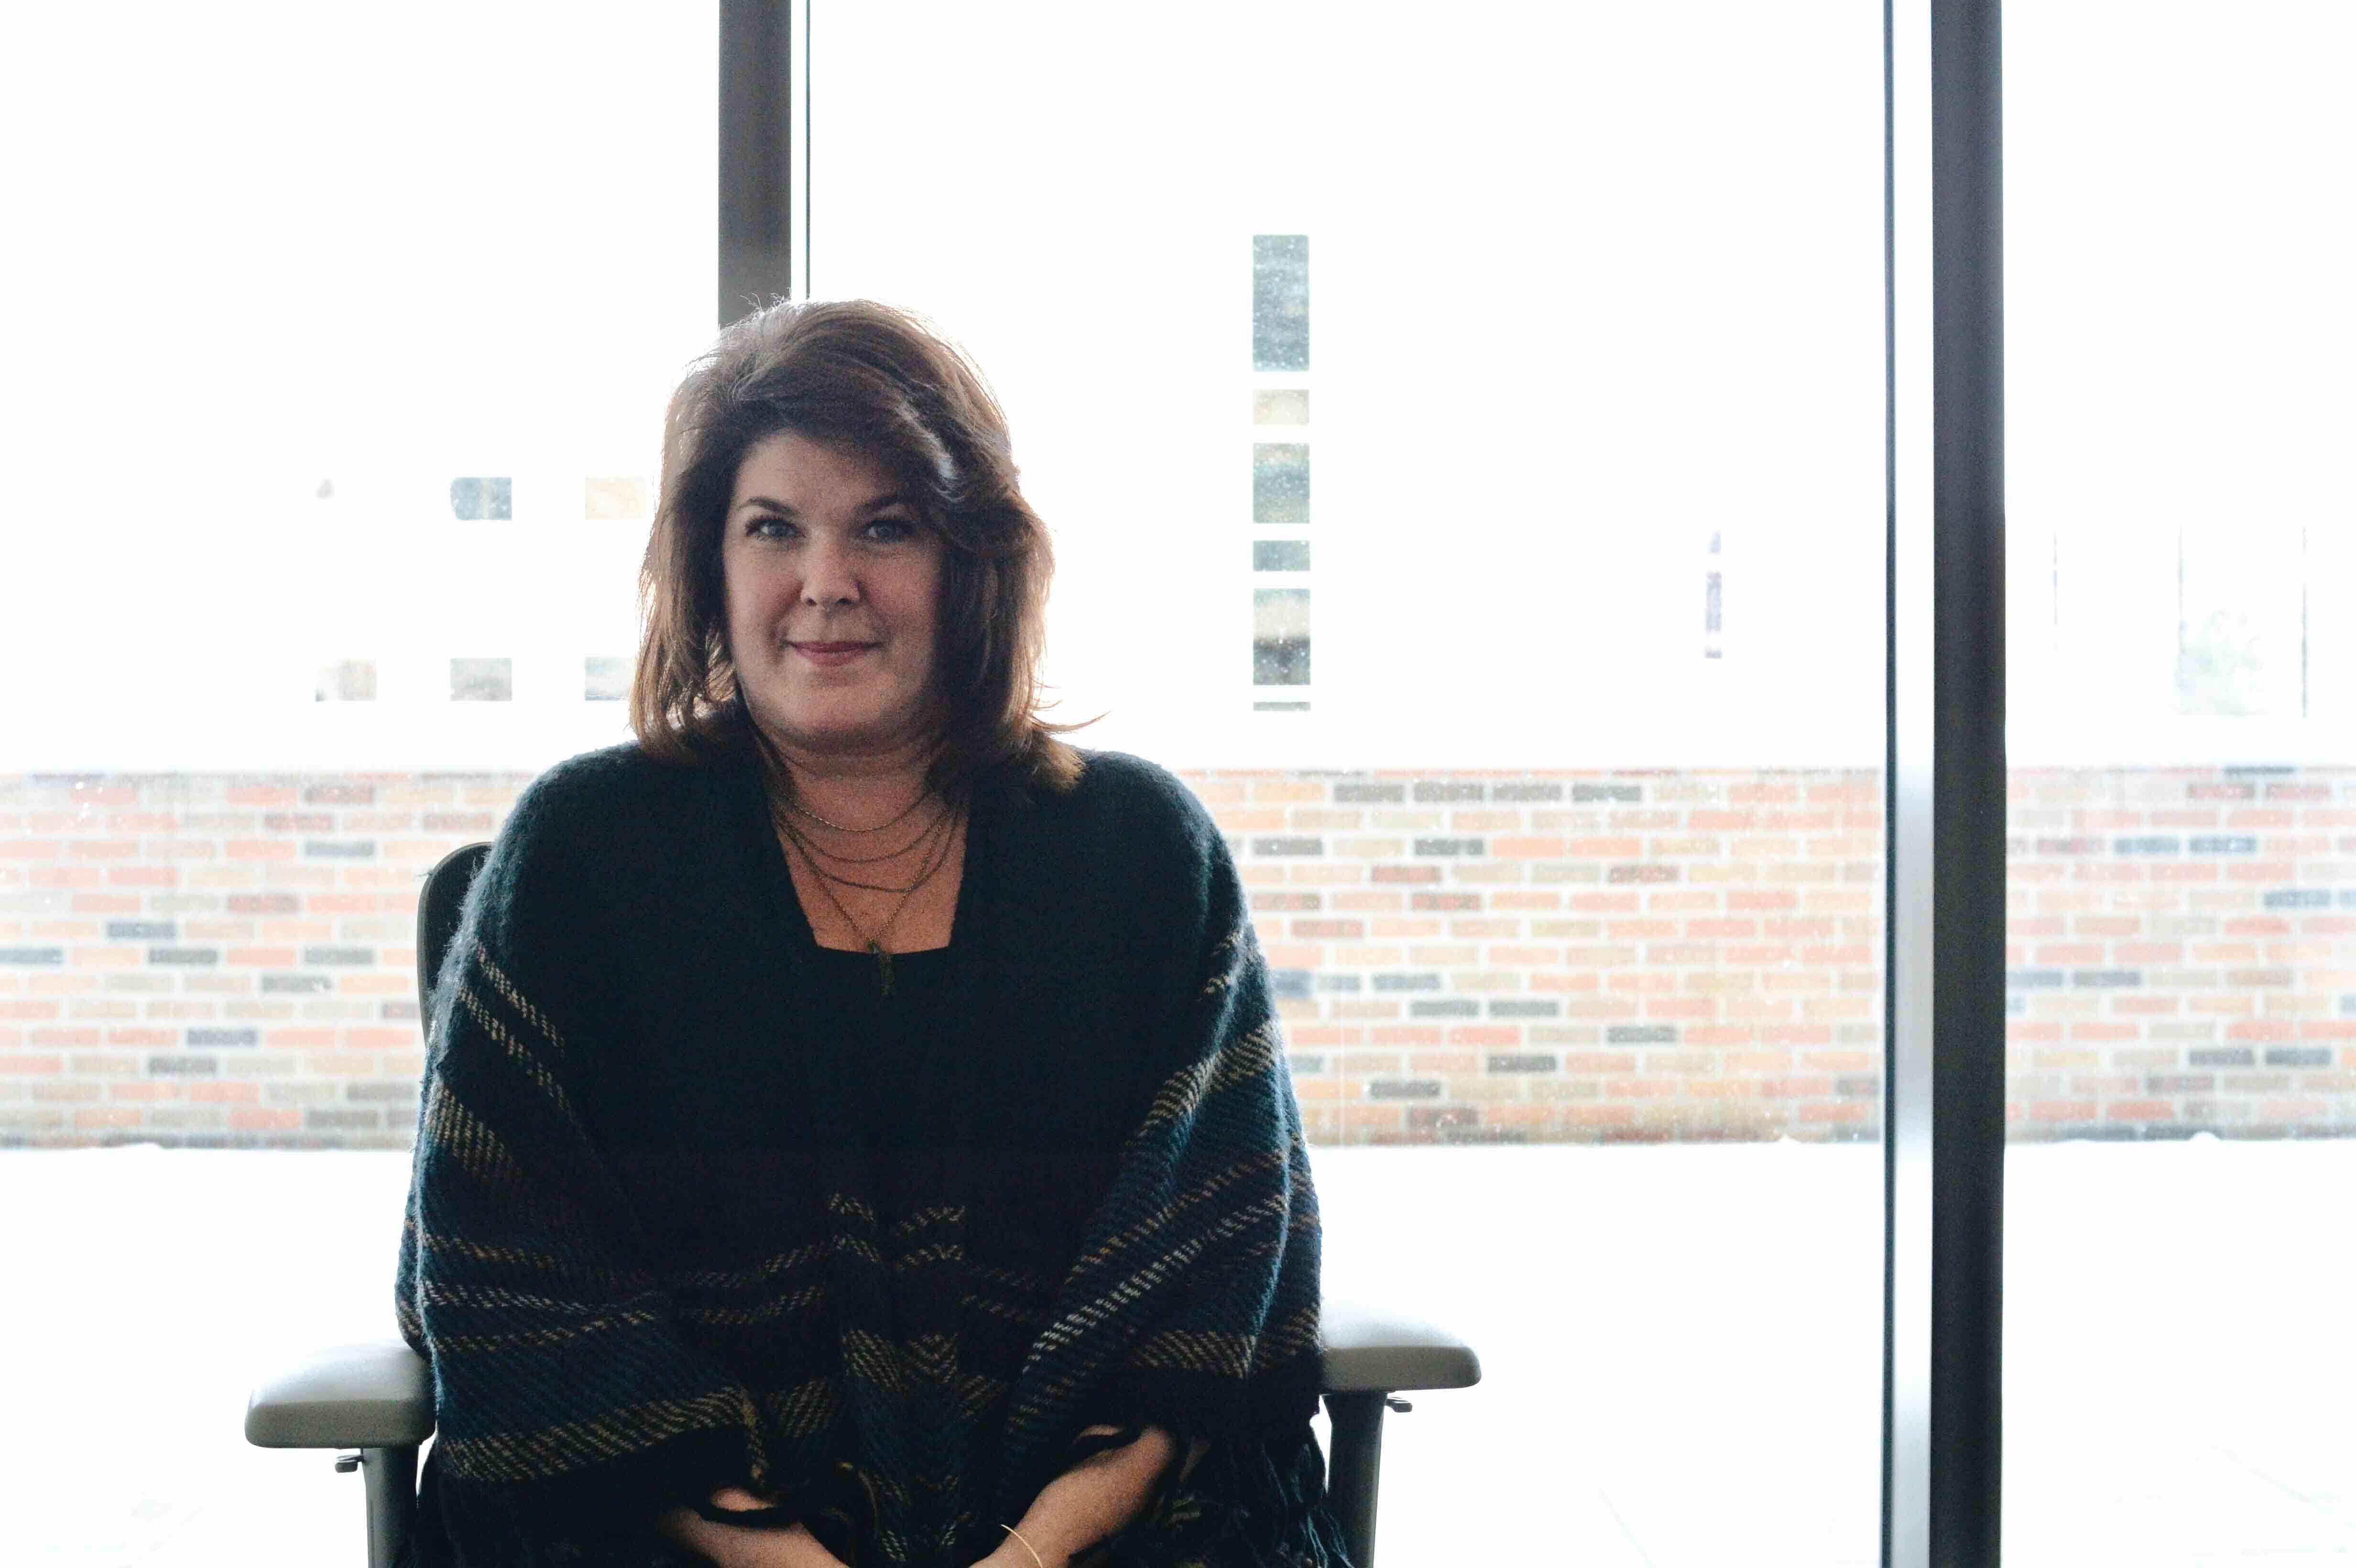 Debra Wheeler has been awarded adviser of the month twice and was nominated for the Outstanding Professional Academic Advising Award in 2015 as well as 2016-17.